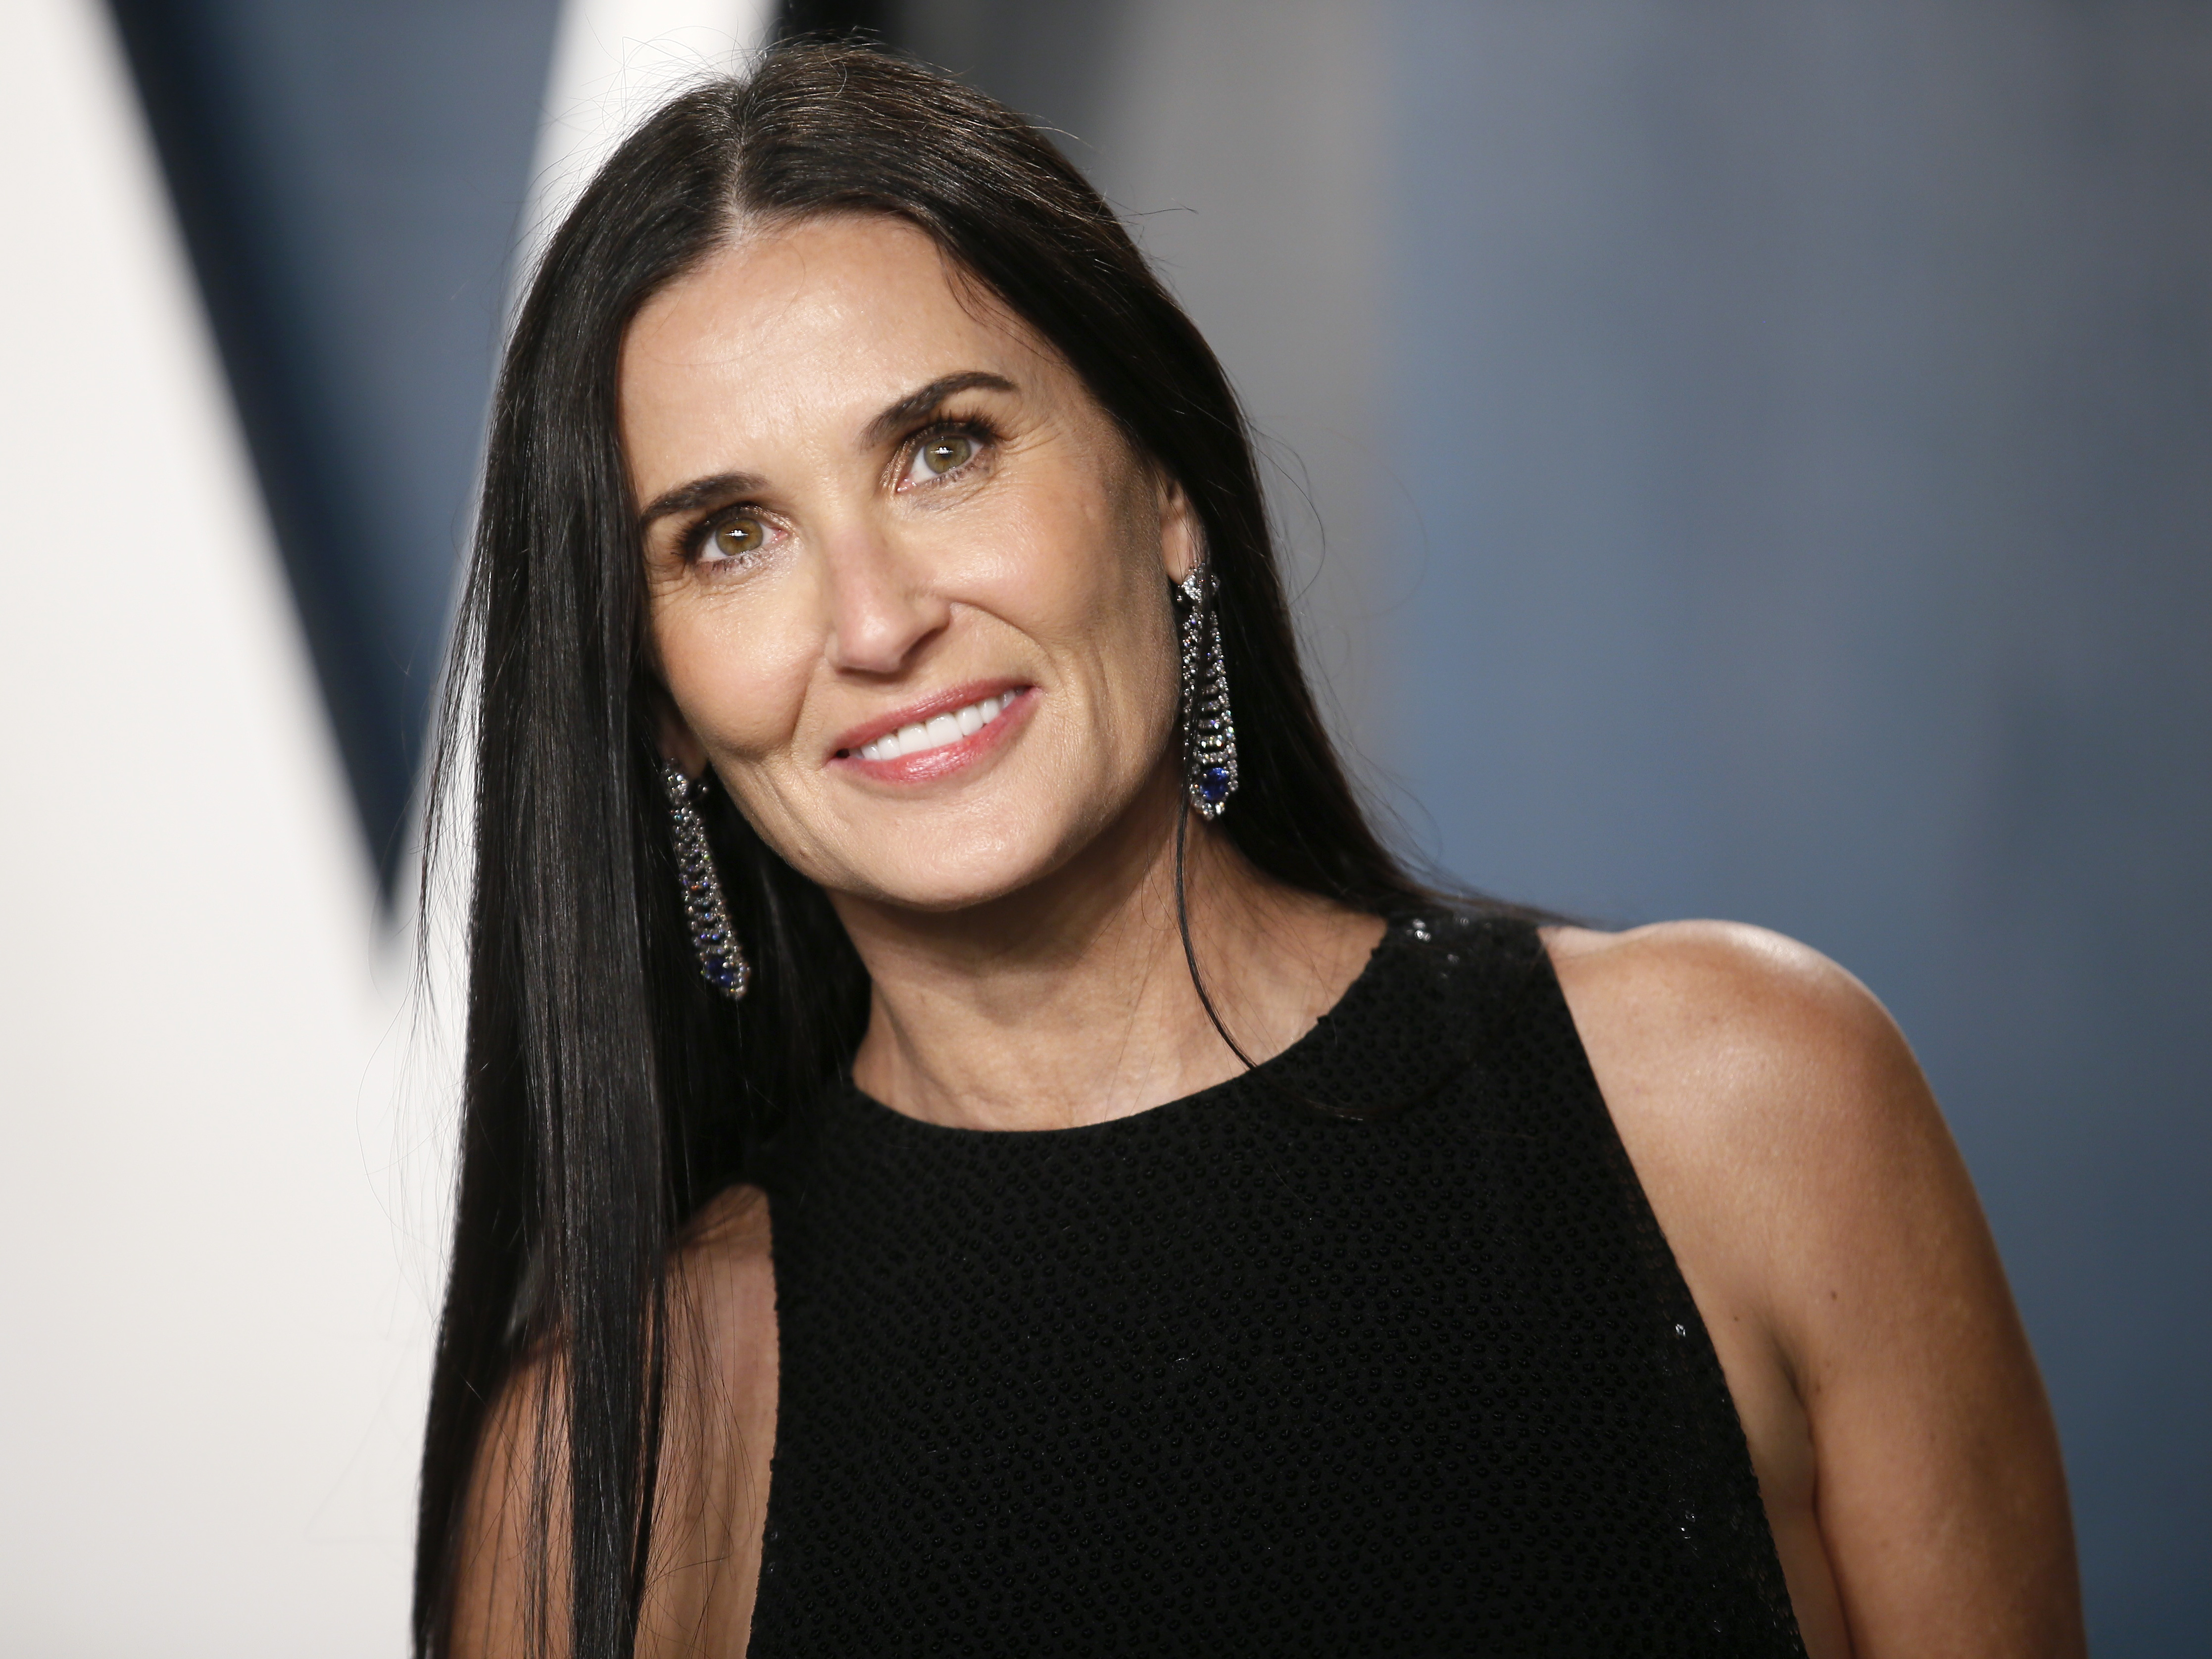 Demi Moore attends the Vanity Fair Oscar party in Beverly Hills during the 92nd Academy Awards, in Los Angeles, California, U.S., February 9, 2020.    REUTERS/Danny Moloshok